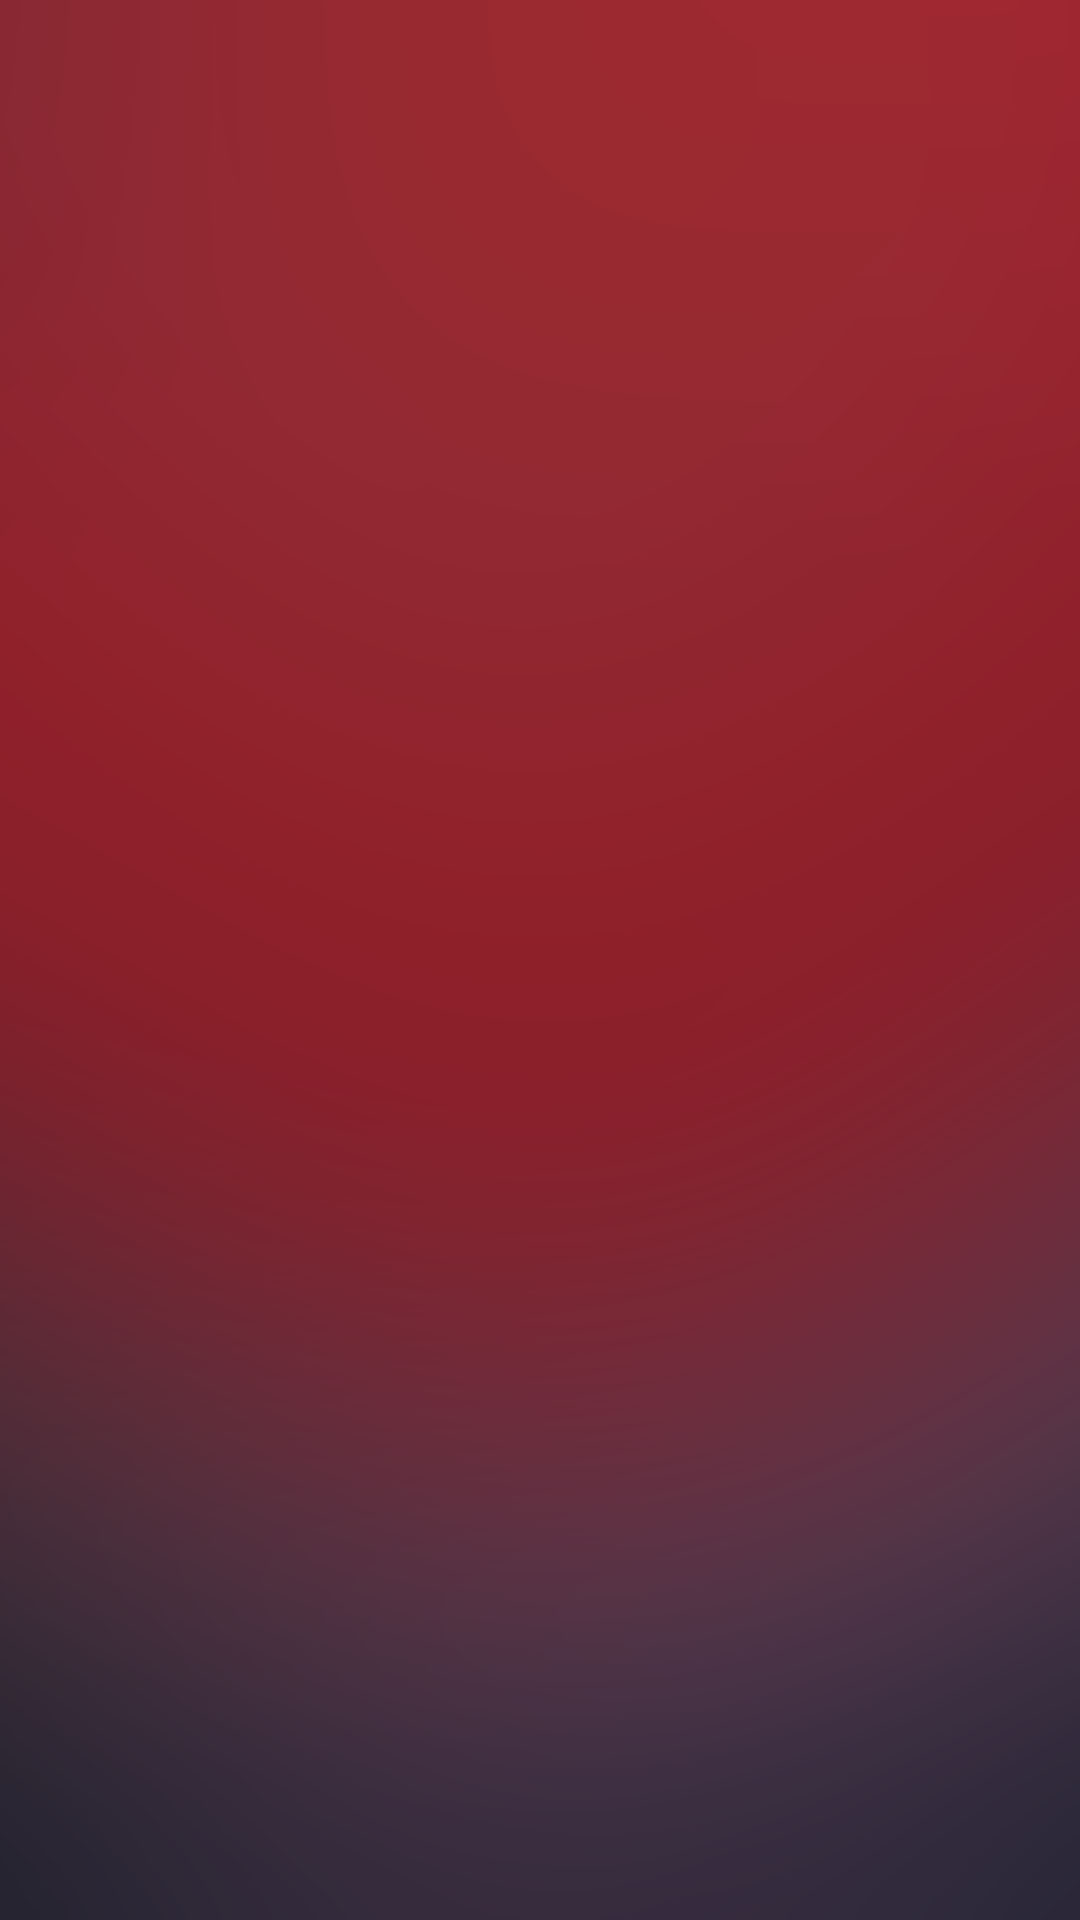 Dark Red Gradient Simple Android Wallpaper …